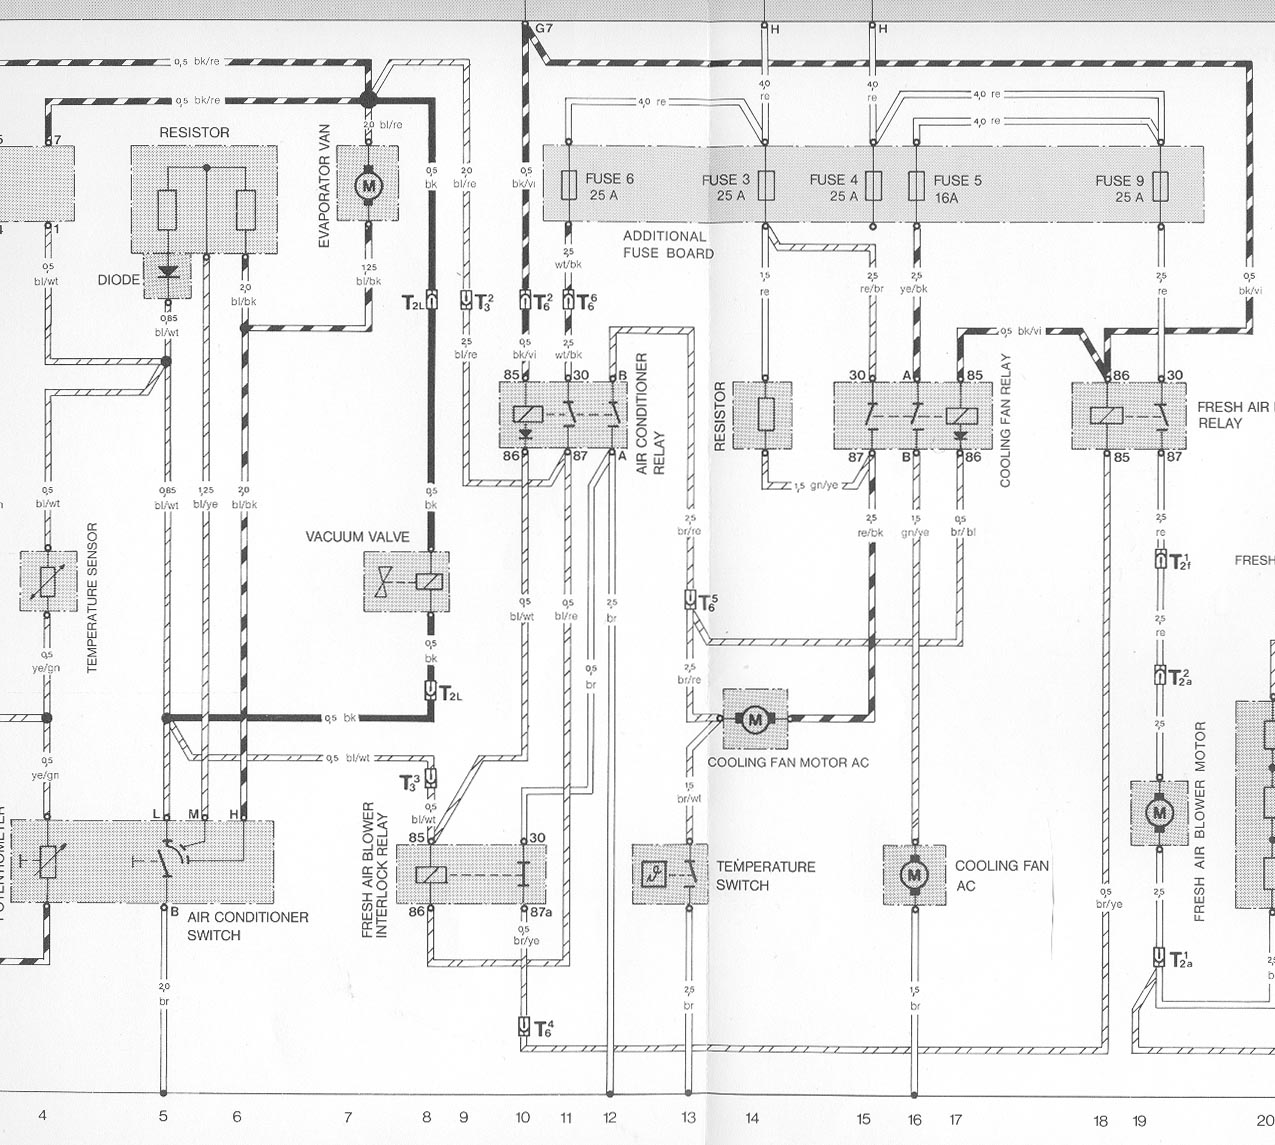 early_cooling_fan_with_ac cooling fan operation and troubleshooting 1984 porsche 944 fuse box diagram at webbmarketing.co